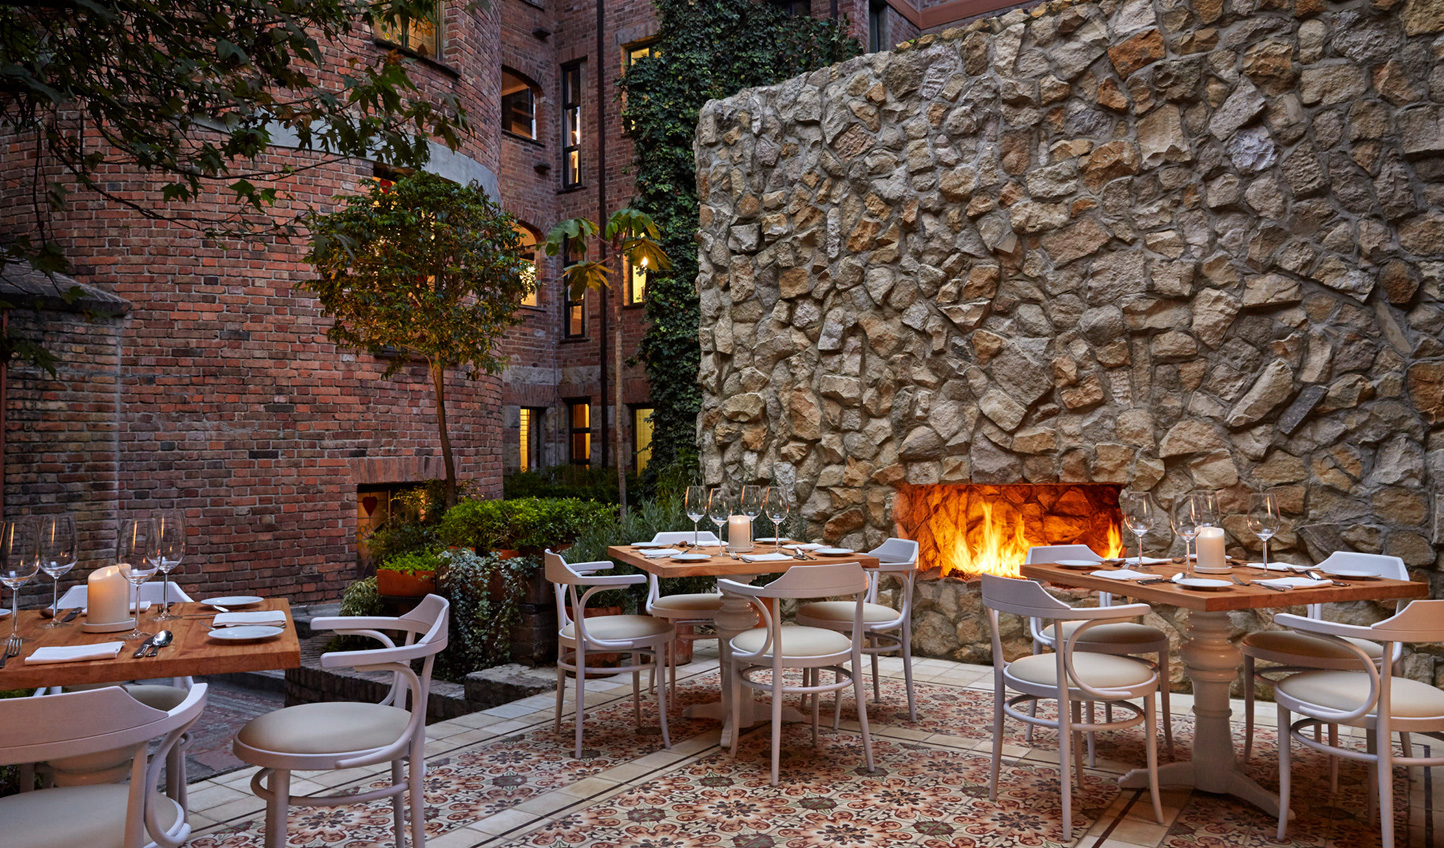 The outdoor courtyard is perfect for sampling local delicacies